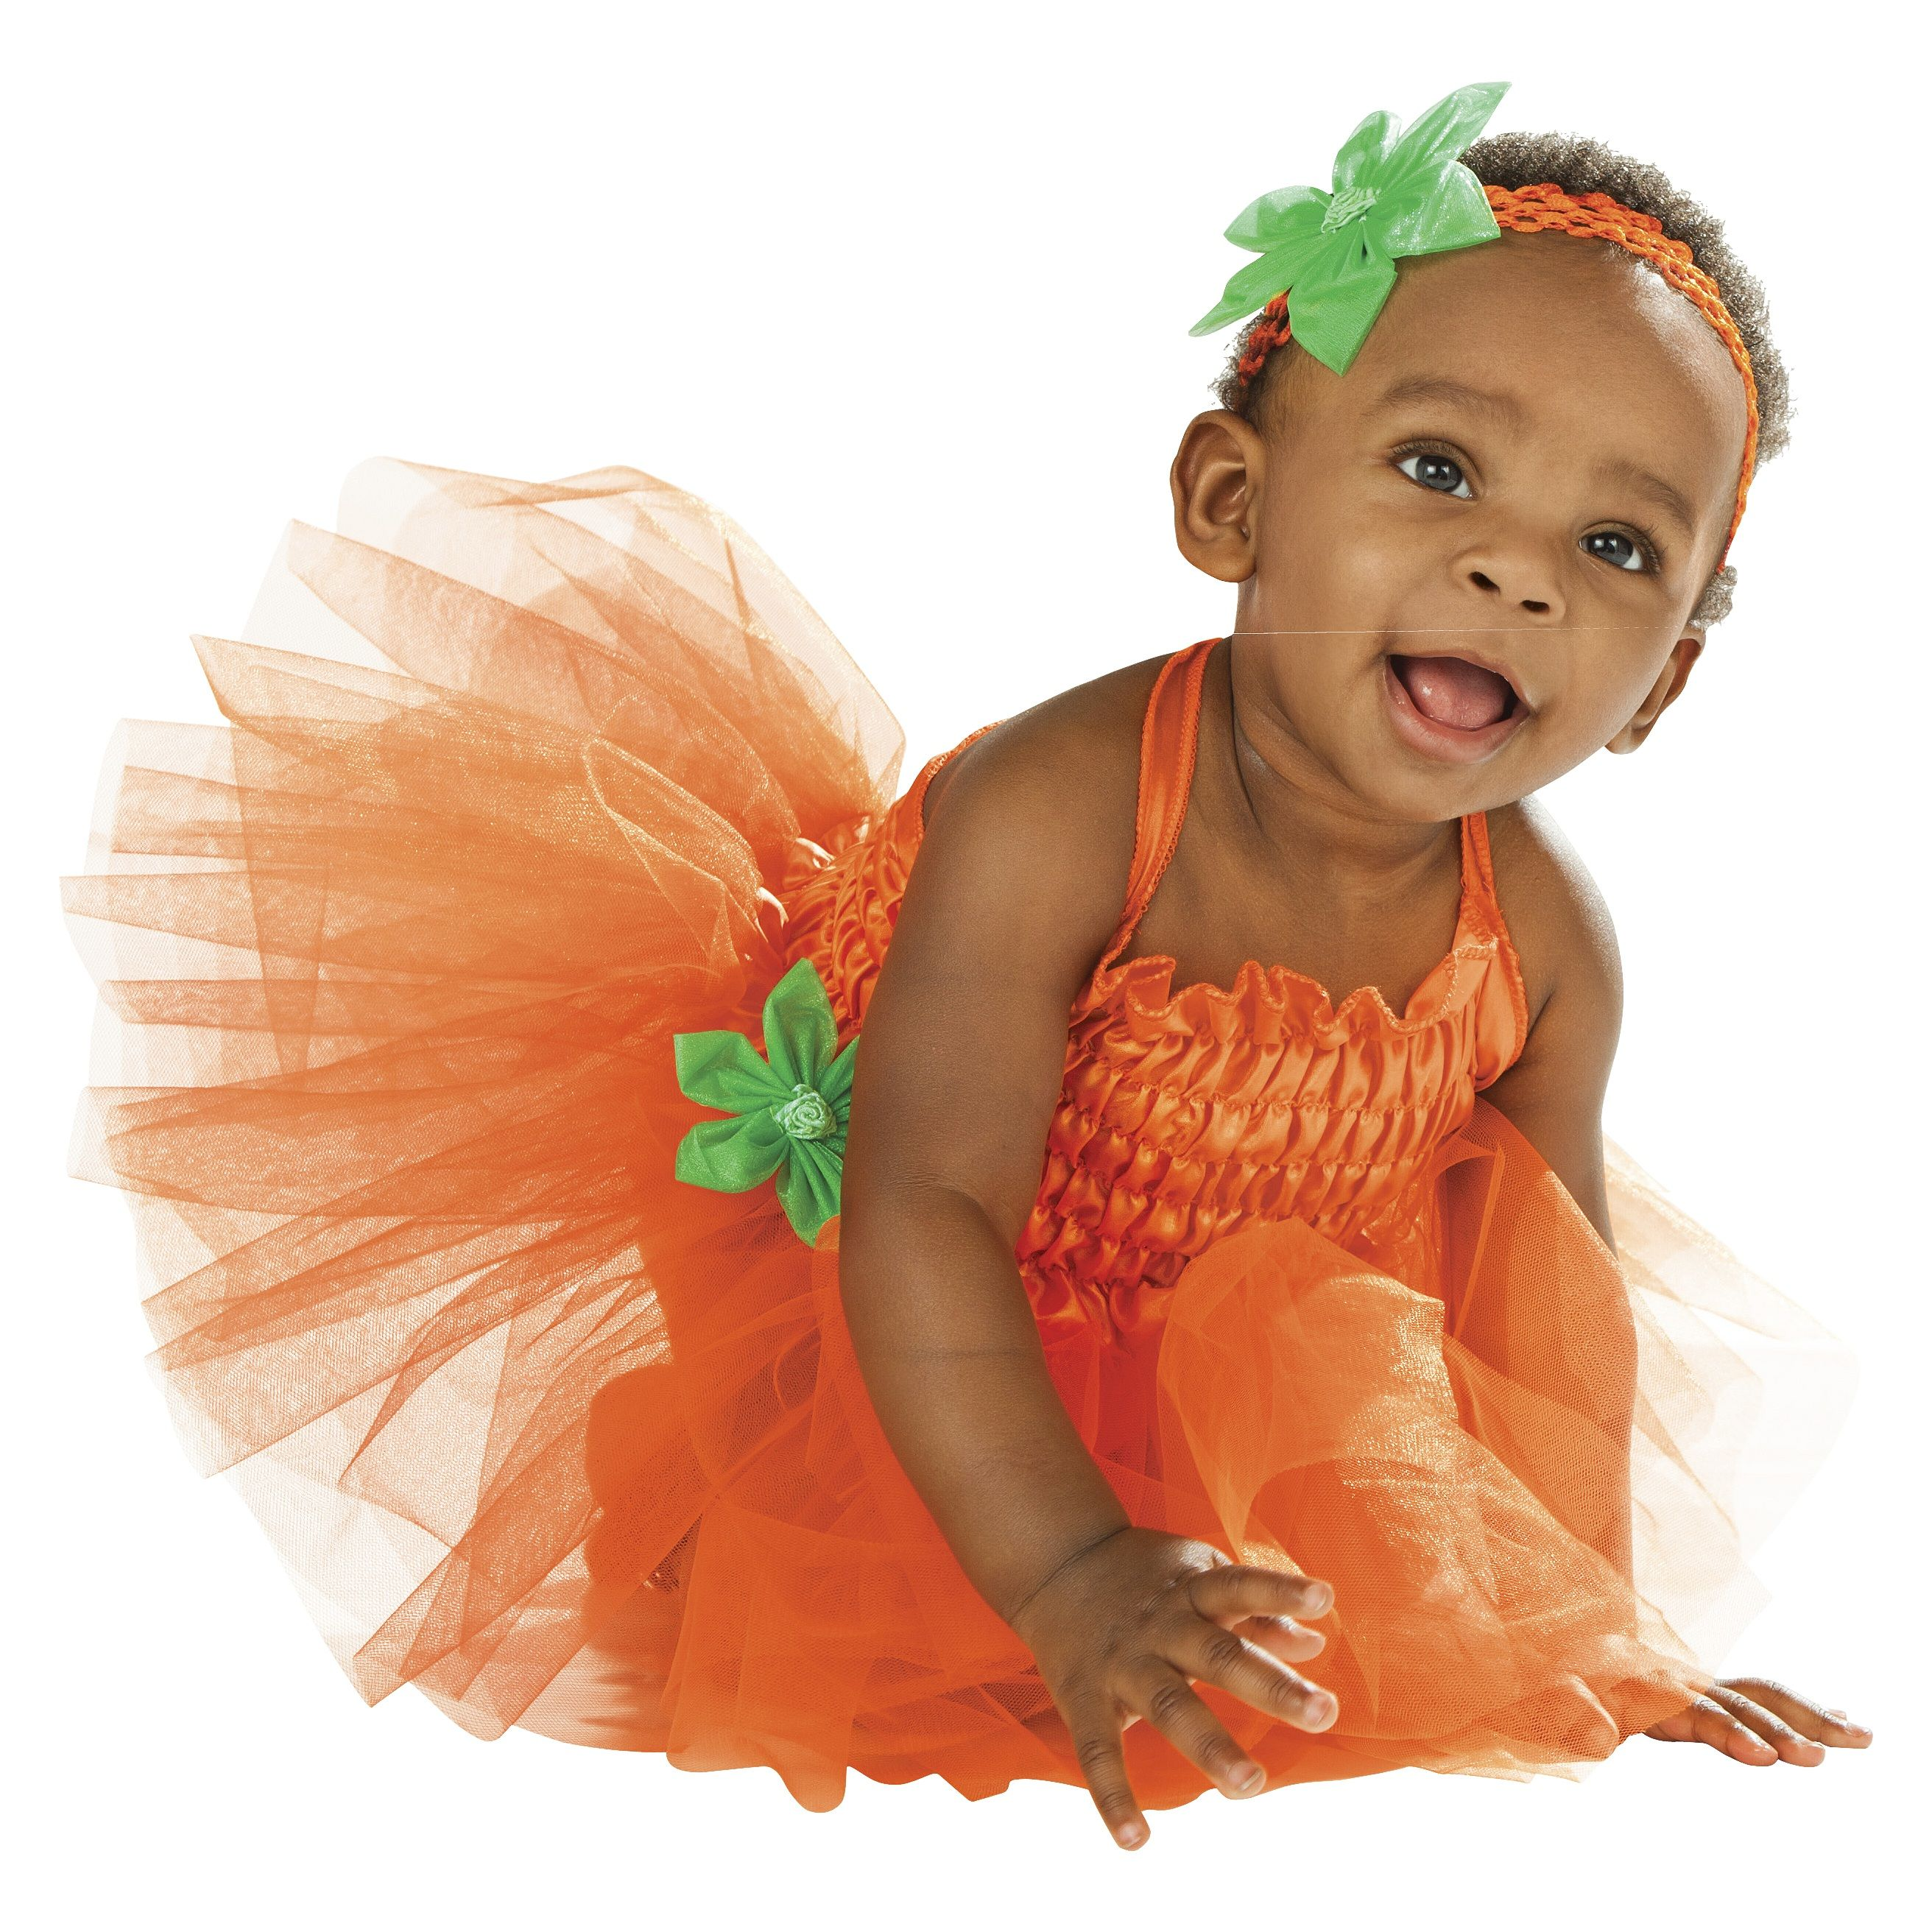 Have the cutest pumpkin on the block this #Halloween with an adorable orange pumpkin #  sc 1 st  Pinterest & Have the cutest pumpkin on the block this #Halloween with an ...